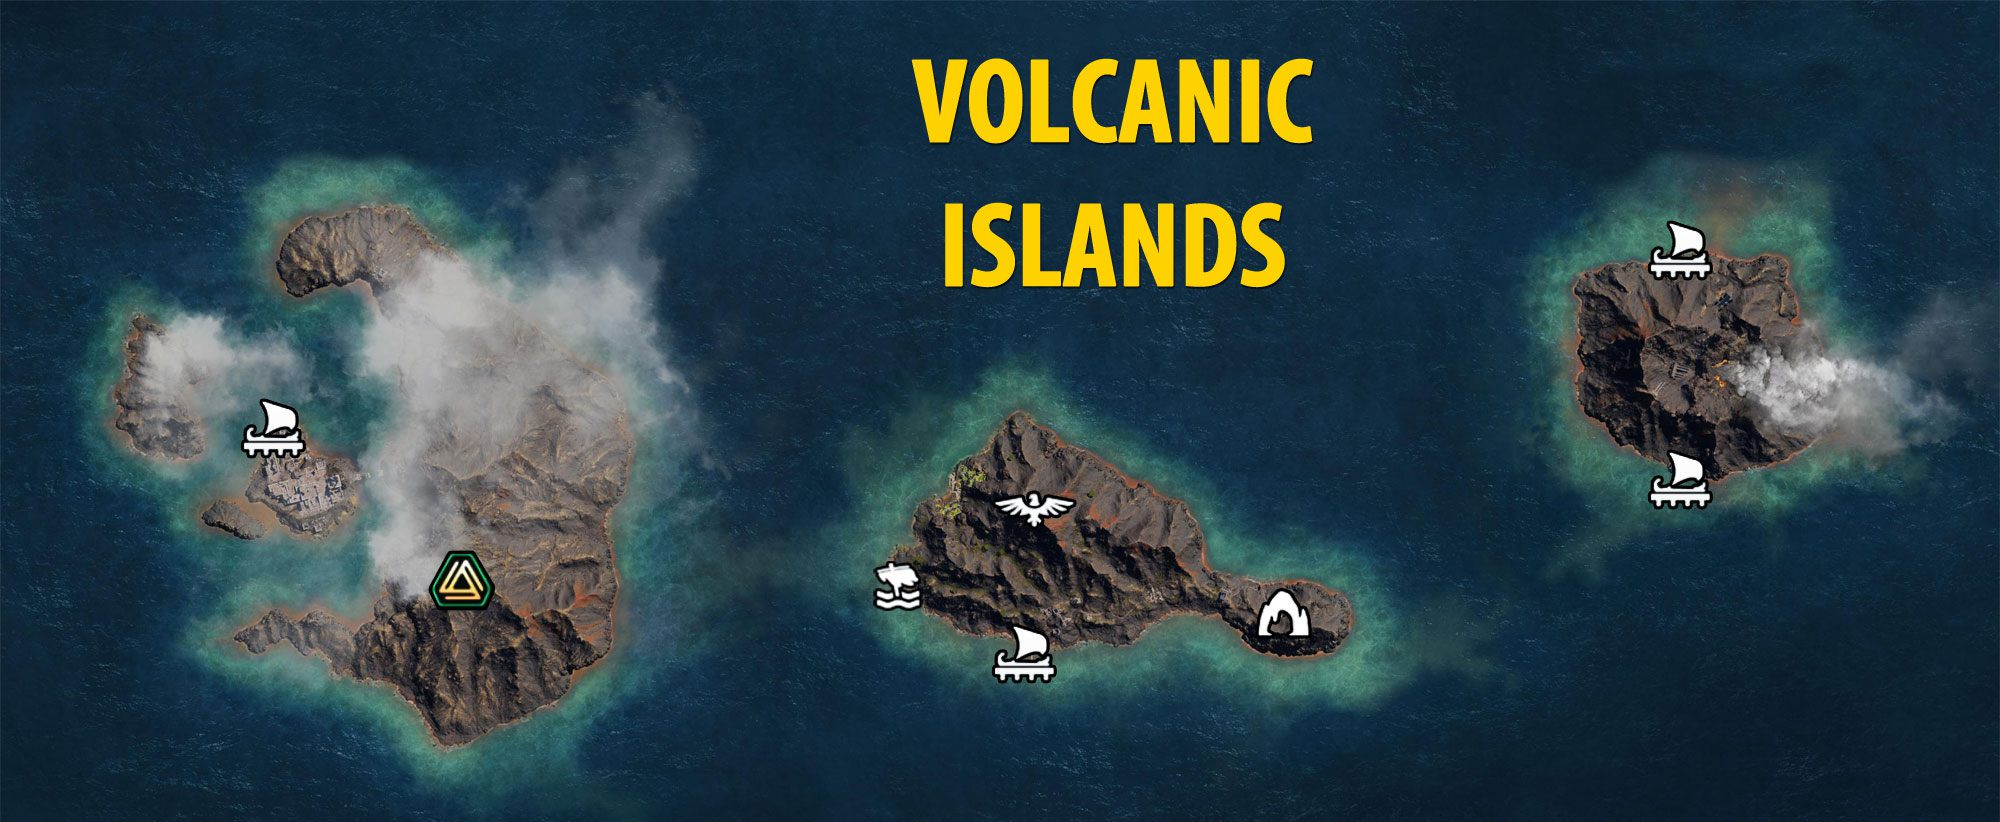 Volcanic Islands Map - Assassin's Creed Odyssey